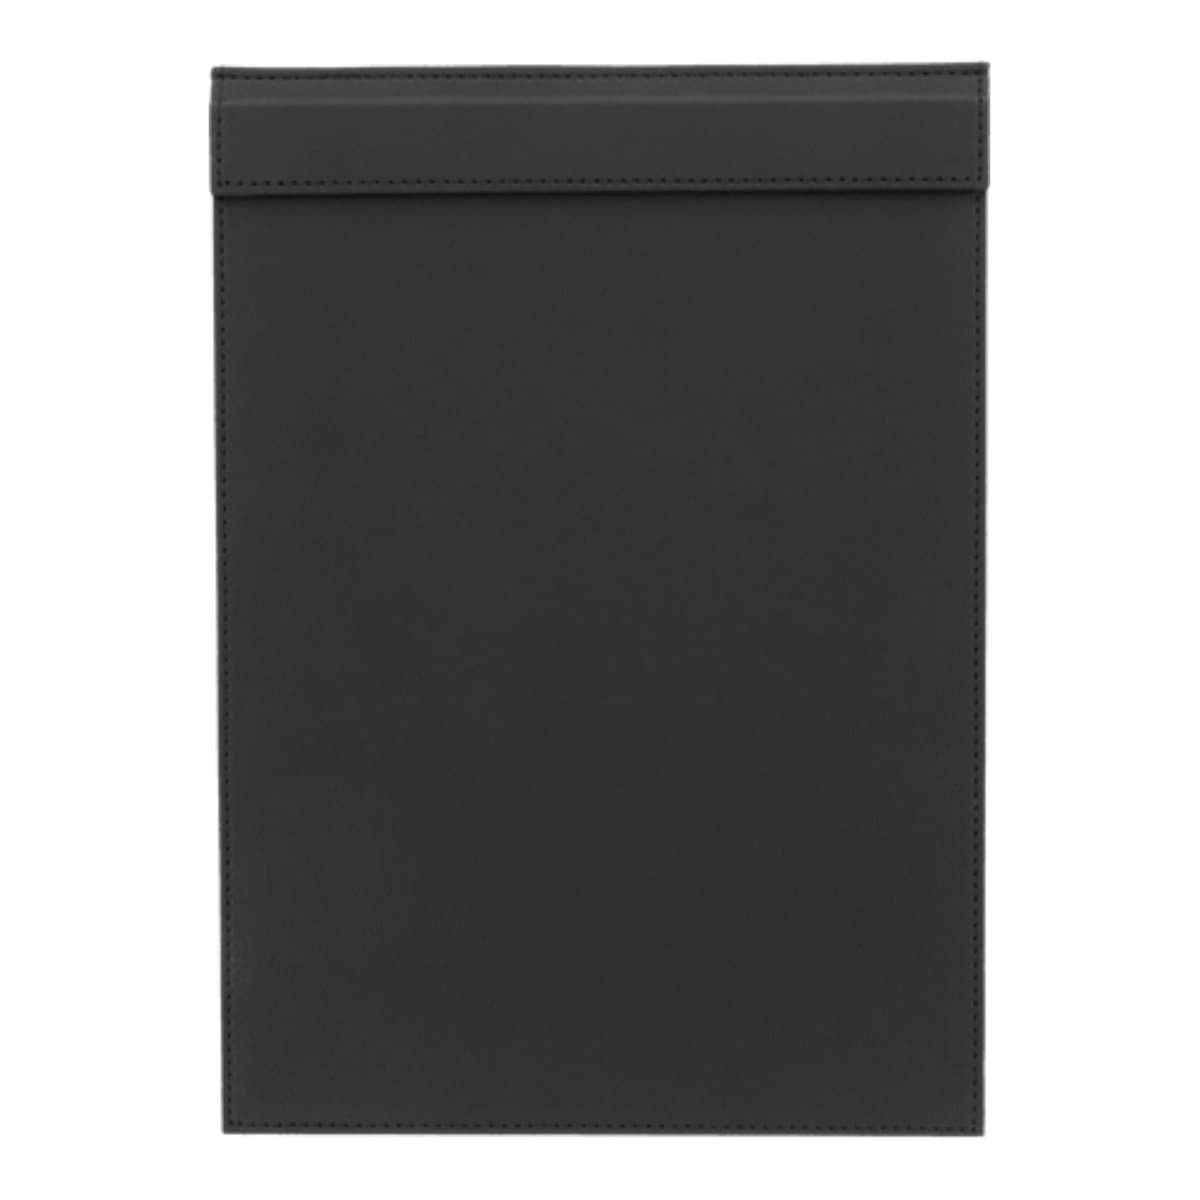 Konrad S. Clip Board with Magnetic Flap A4, PU Leather, Black